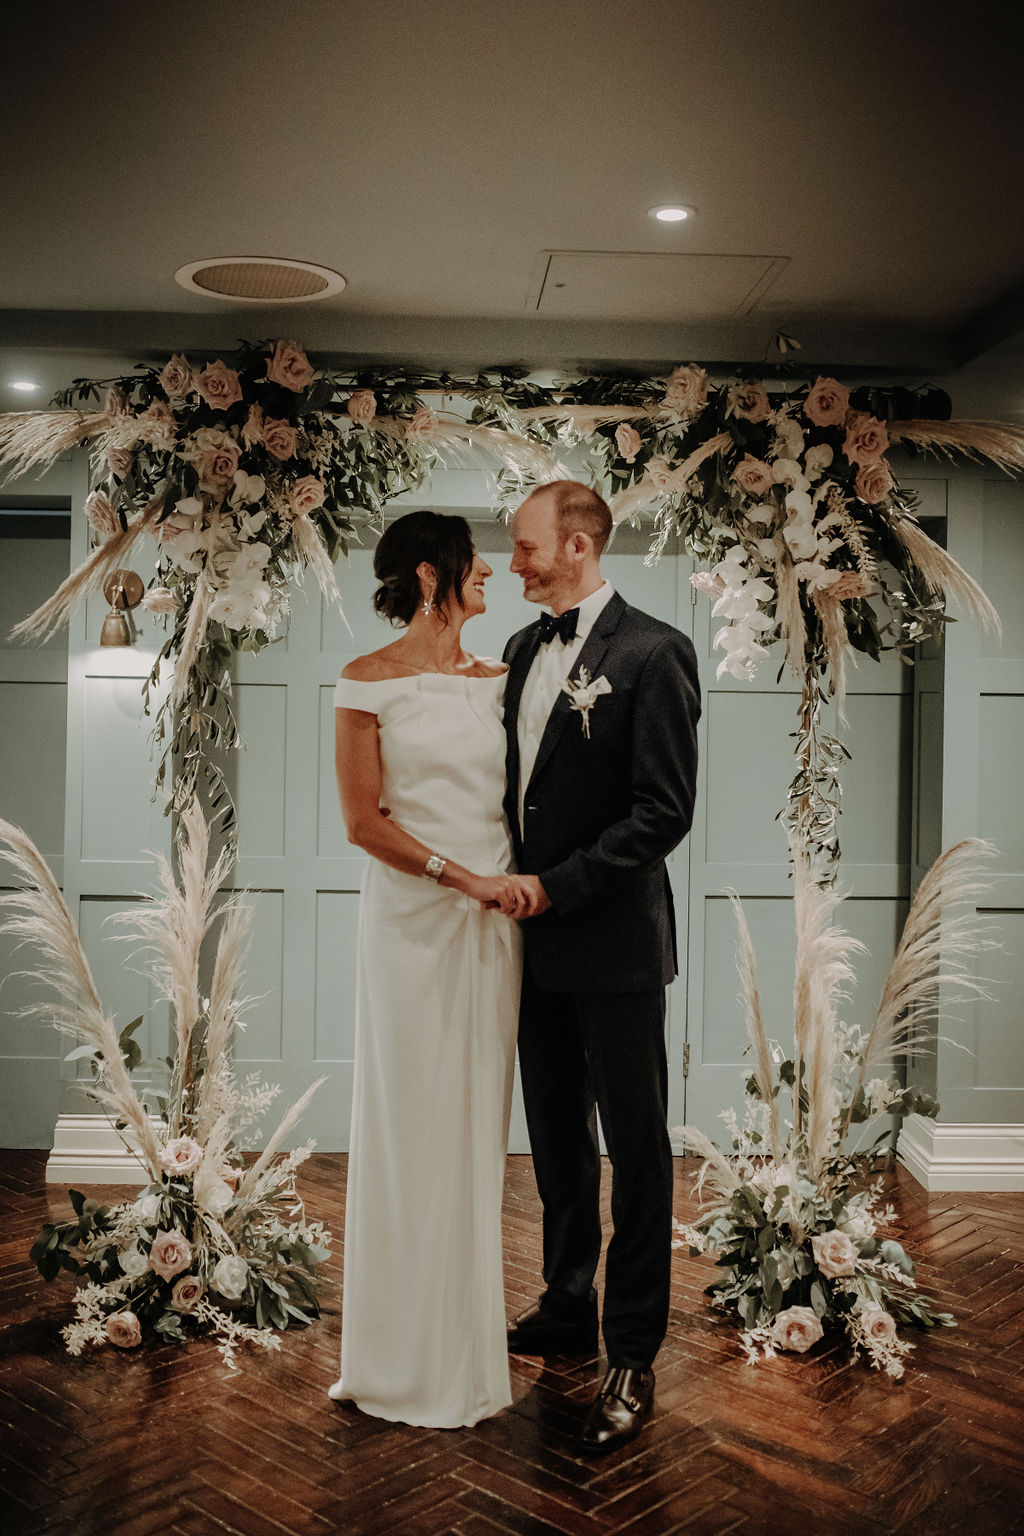 An Intimate City Wedding in Manchester (c) Gail Secker Photography (31)